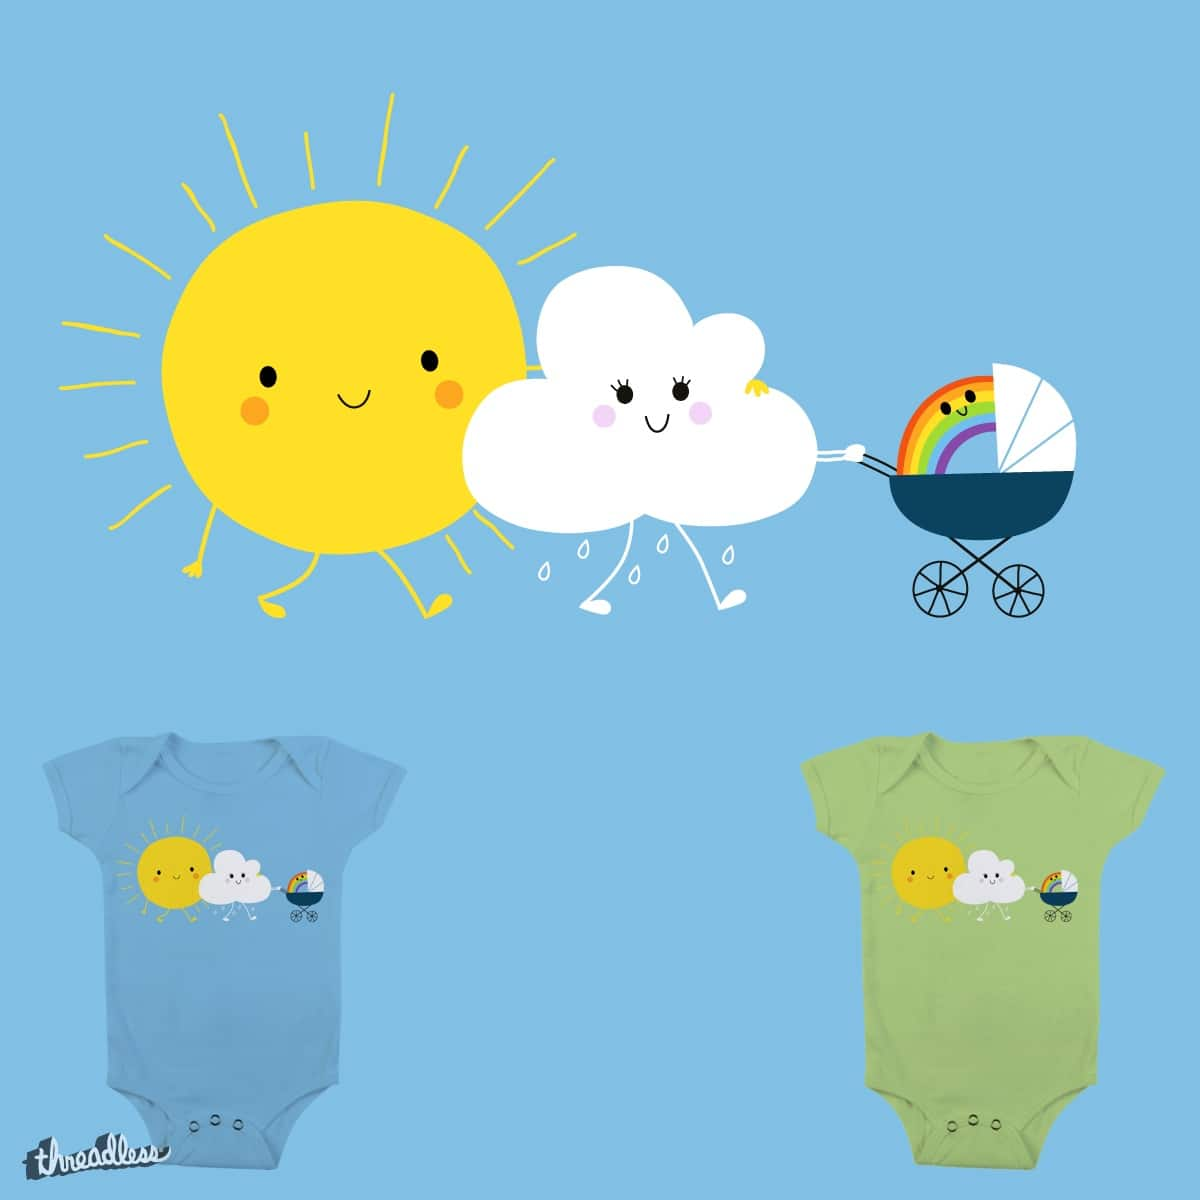 The weather family by nes-k on Threadless